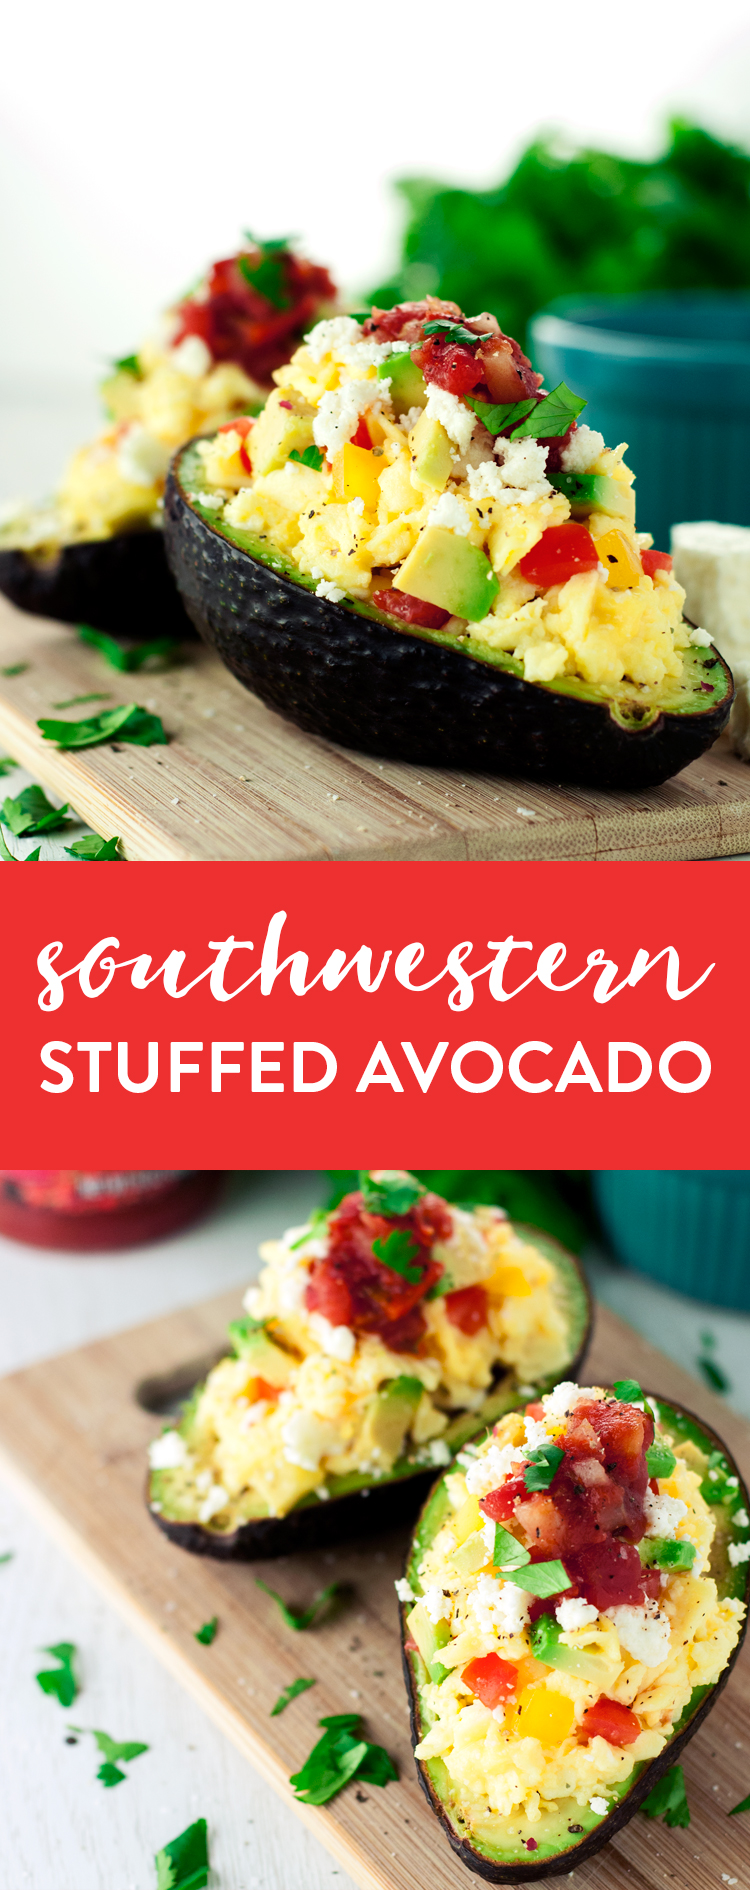 Have a deliciously simple, protein-packed breakfast when you make this Southwestern Stuffed Avocado! Ready in under 15 minutes! | asimplepantry.com